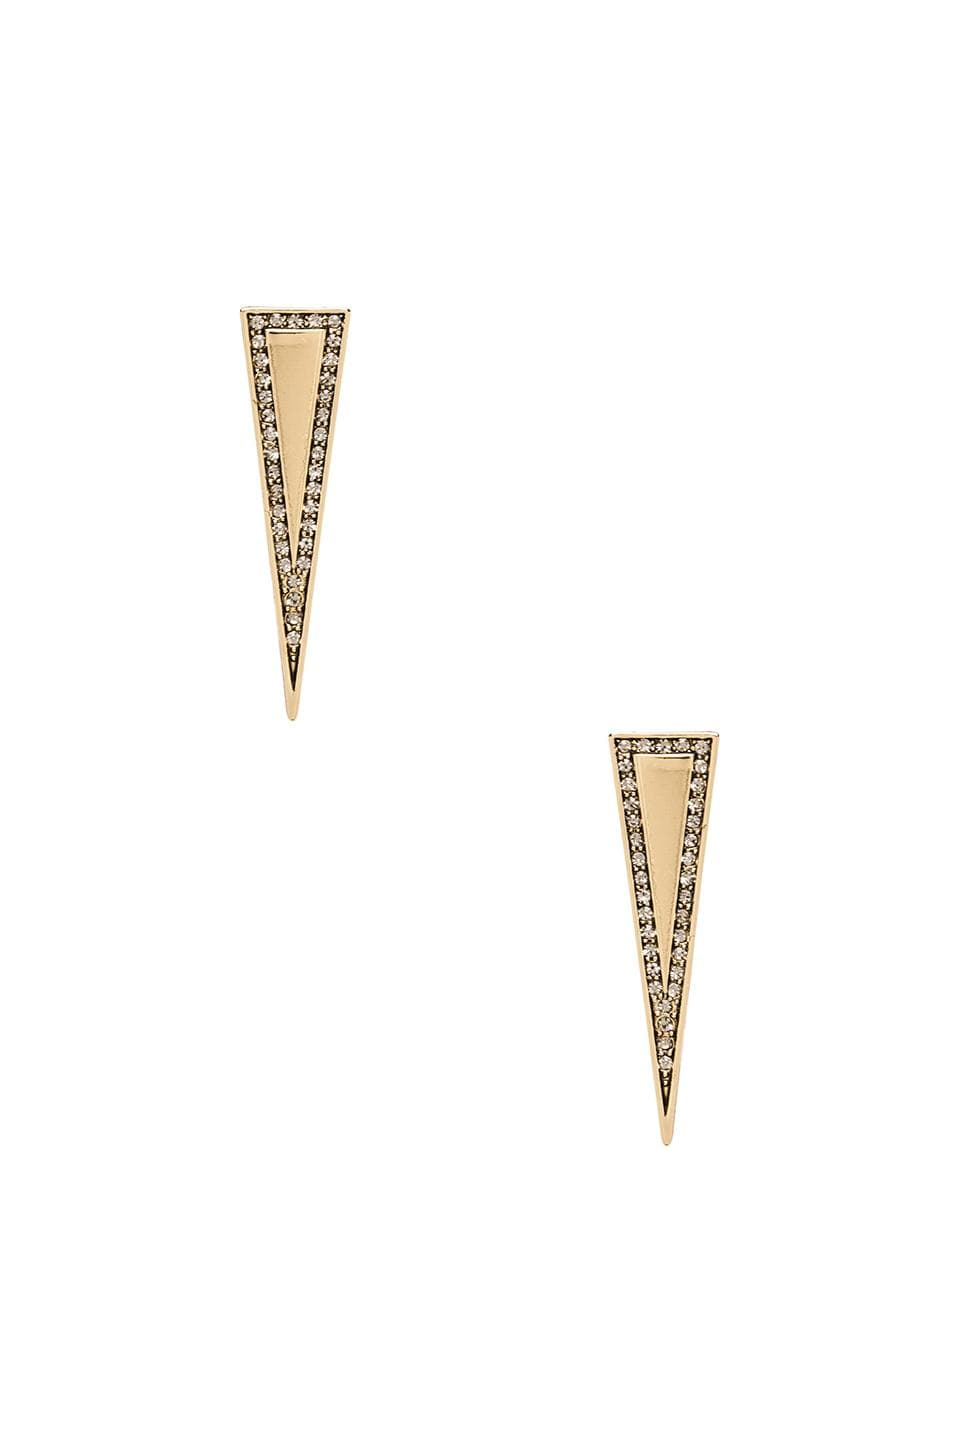 House of Harlow 1960 House of Harlow Athena's Shield Earrings in Gold